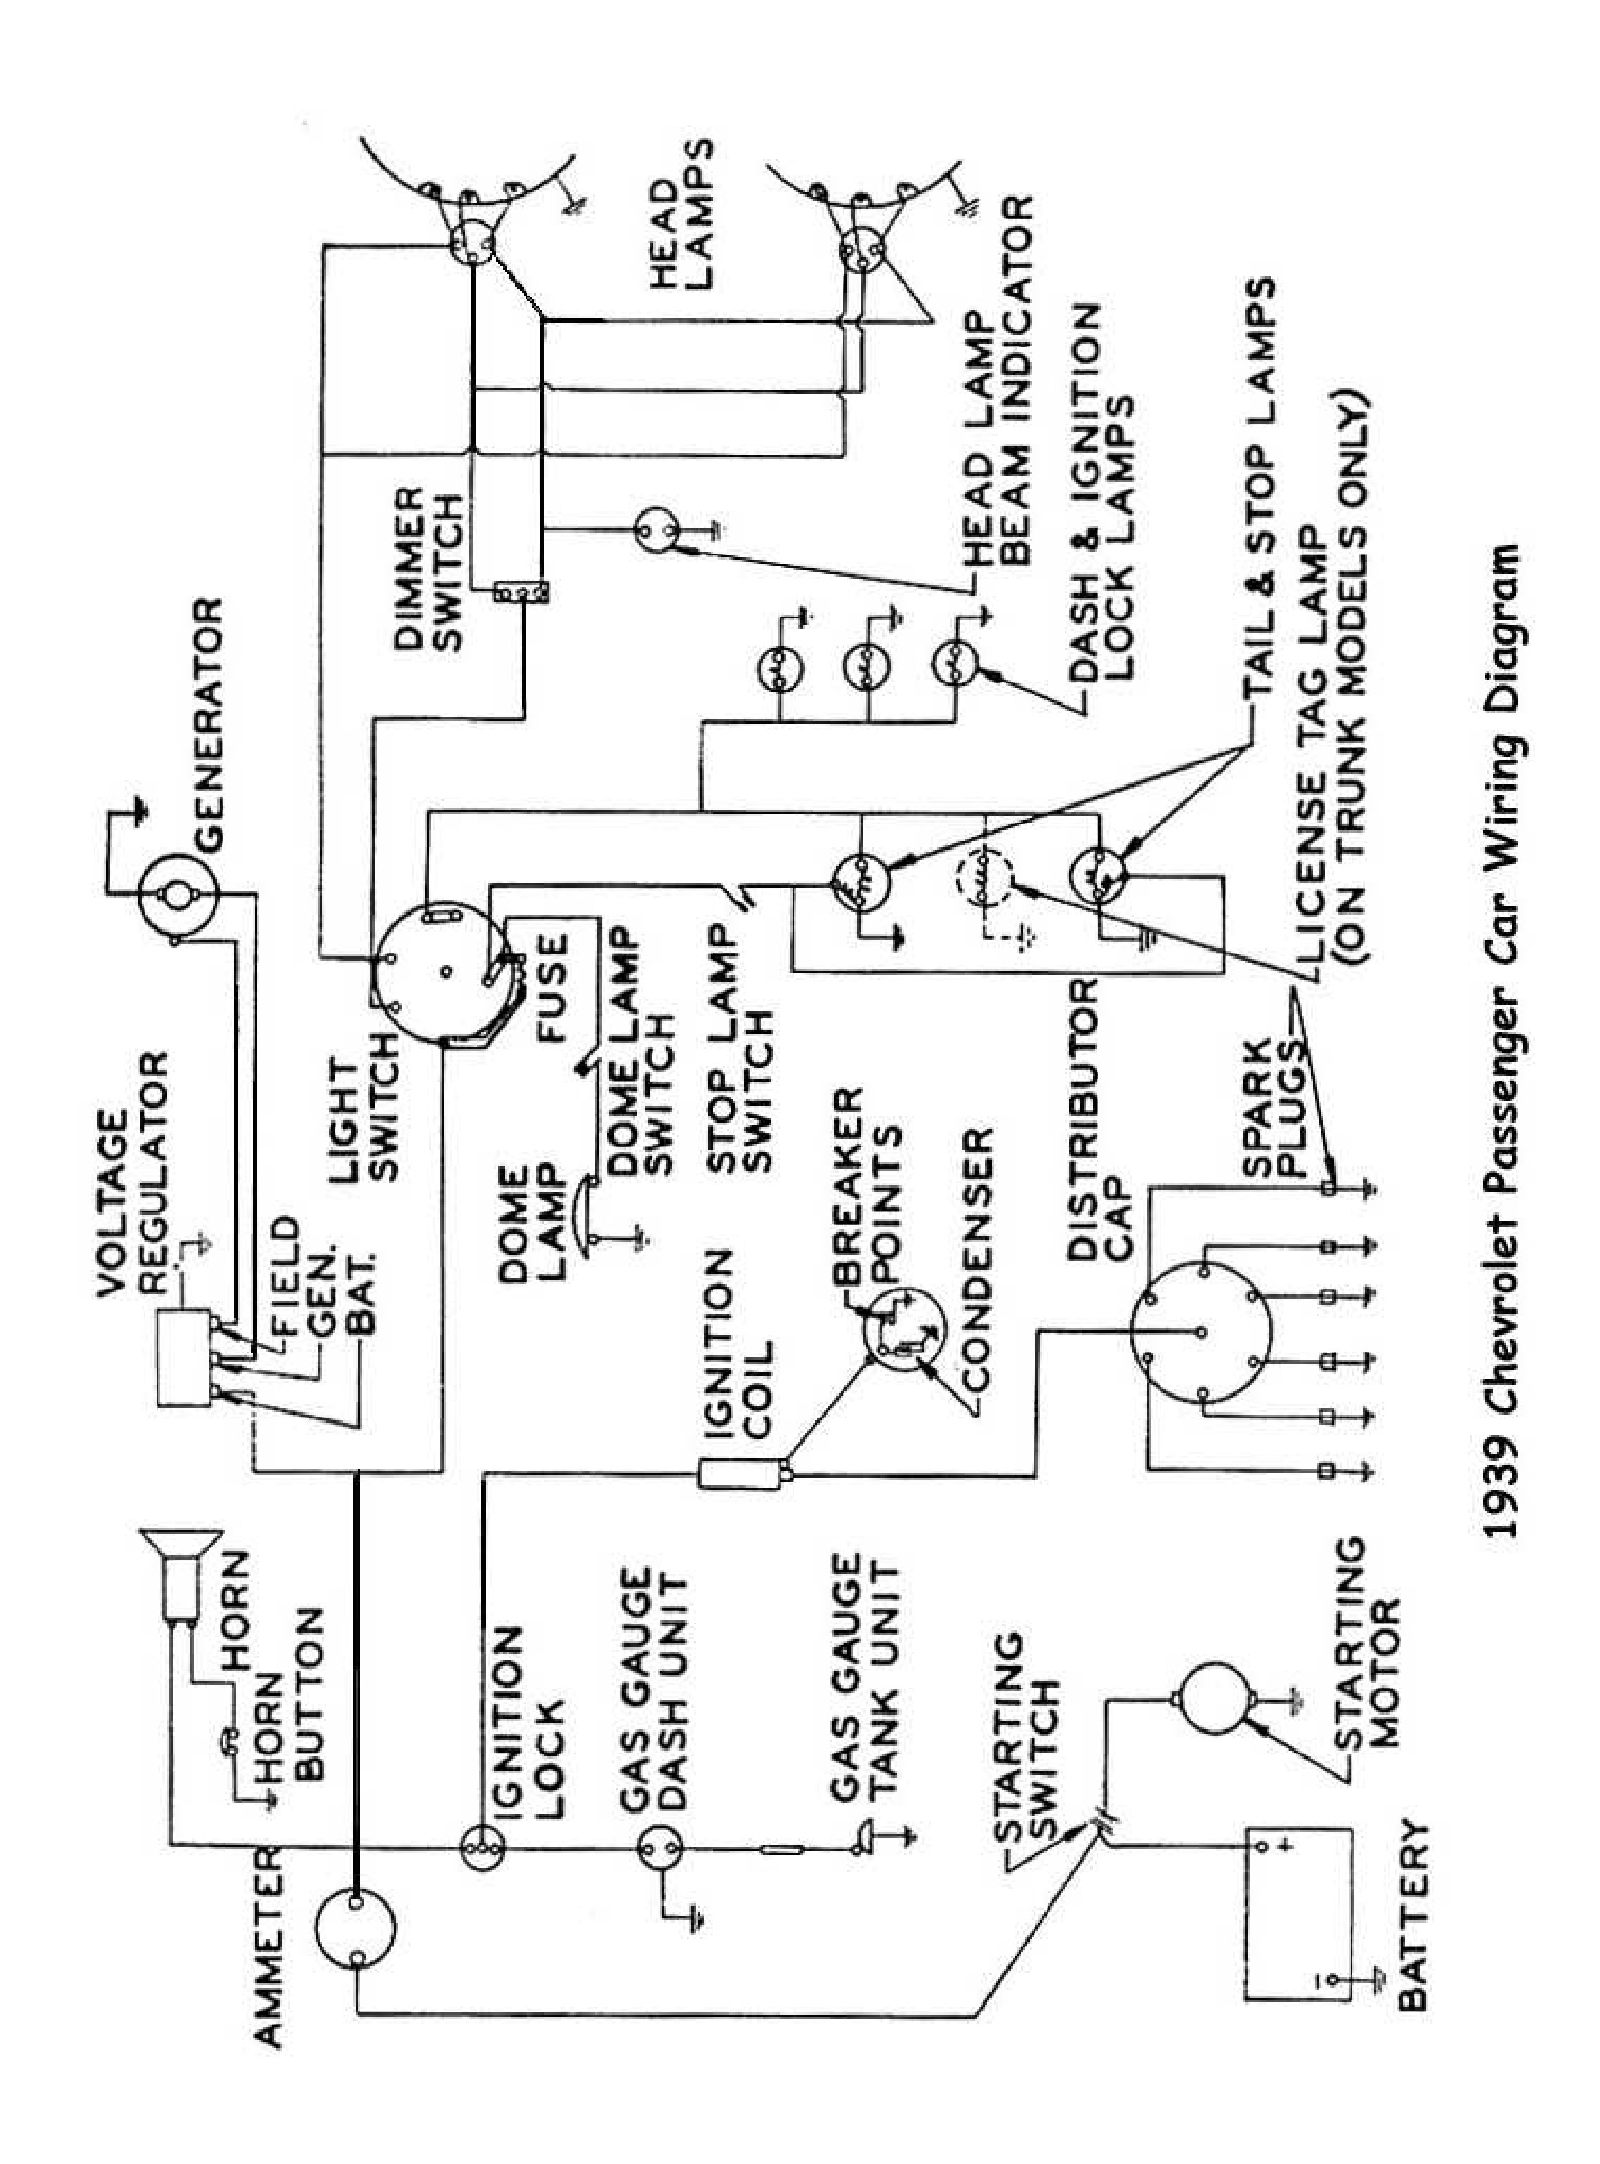 39car chevy wiring diagrams 1999 Chevy Silverado Wire Diagram at gsmportal.co